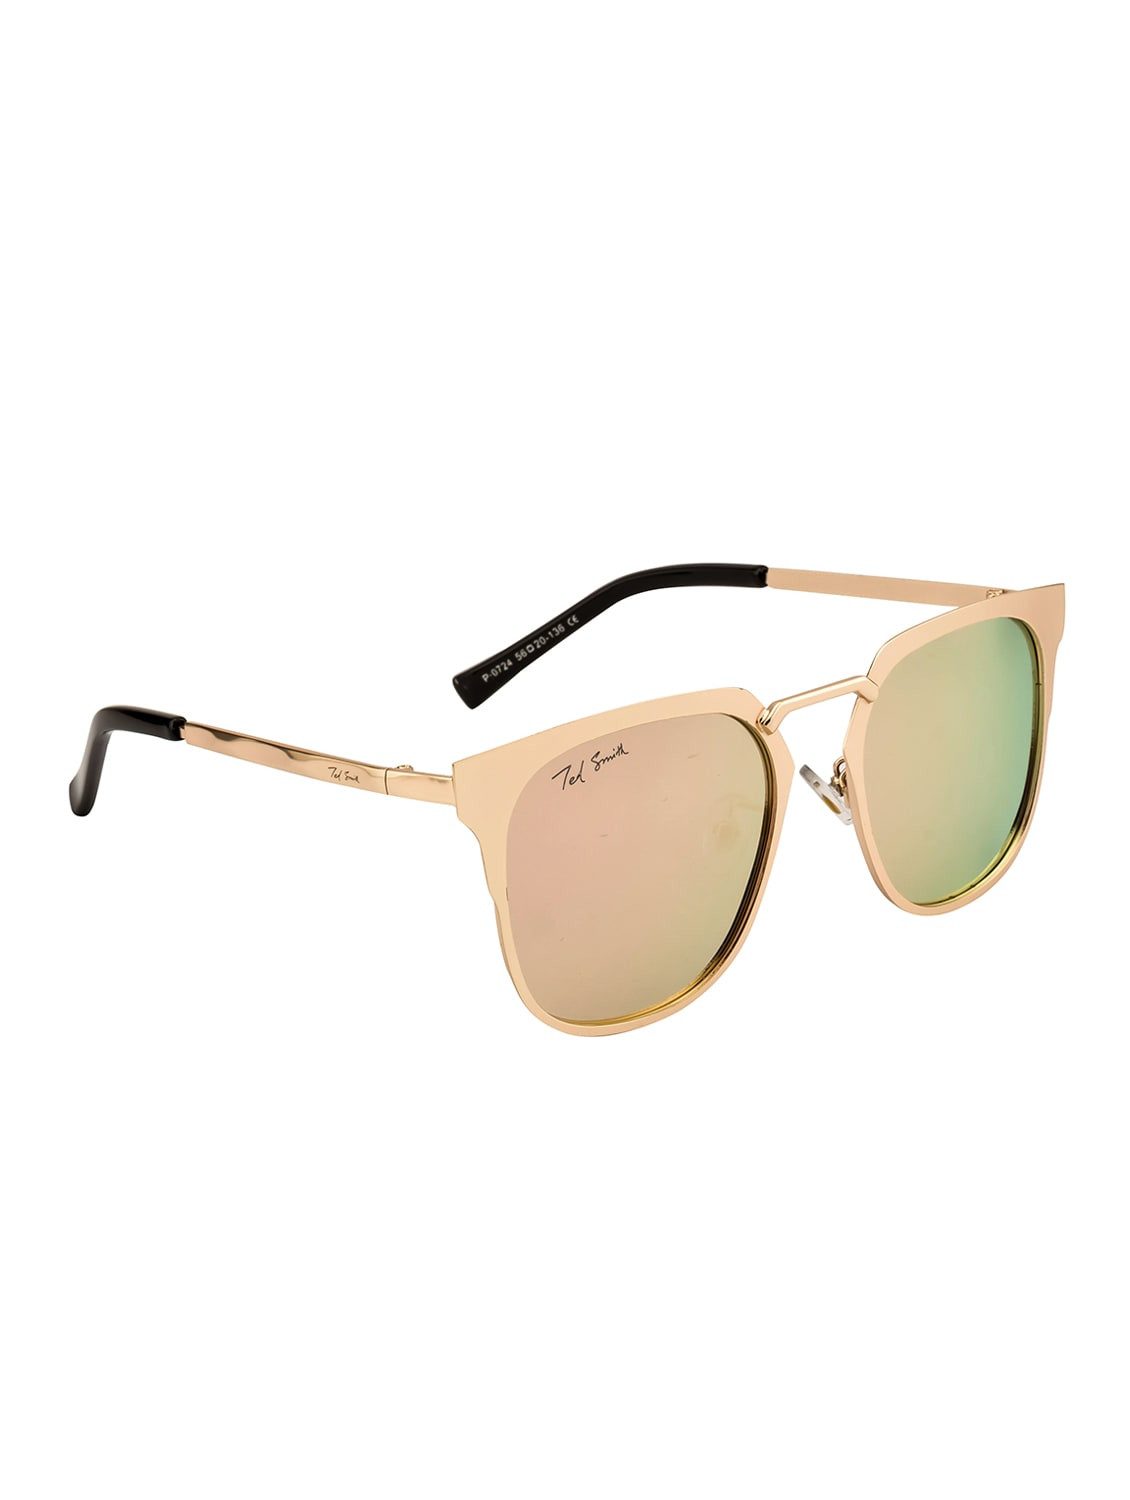 9ee0afdd07 Buy Ted Smith Unisex Wayfarer Gold Polarized Sunglasses by Ted Smith - Online  shopping for Men Sunglasses in India